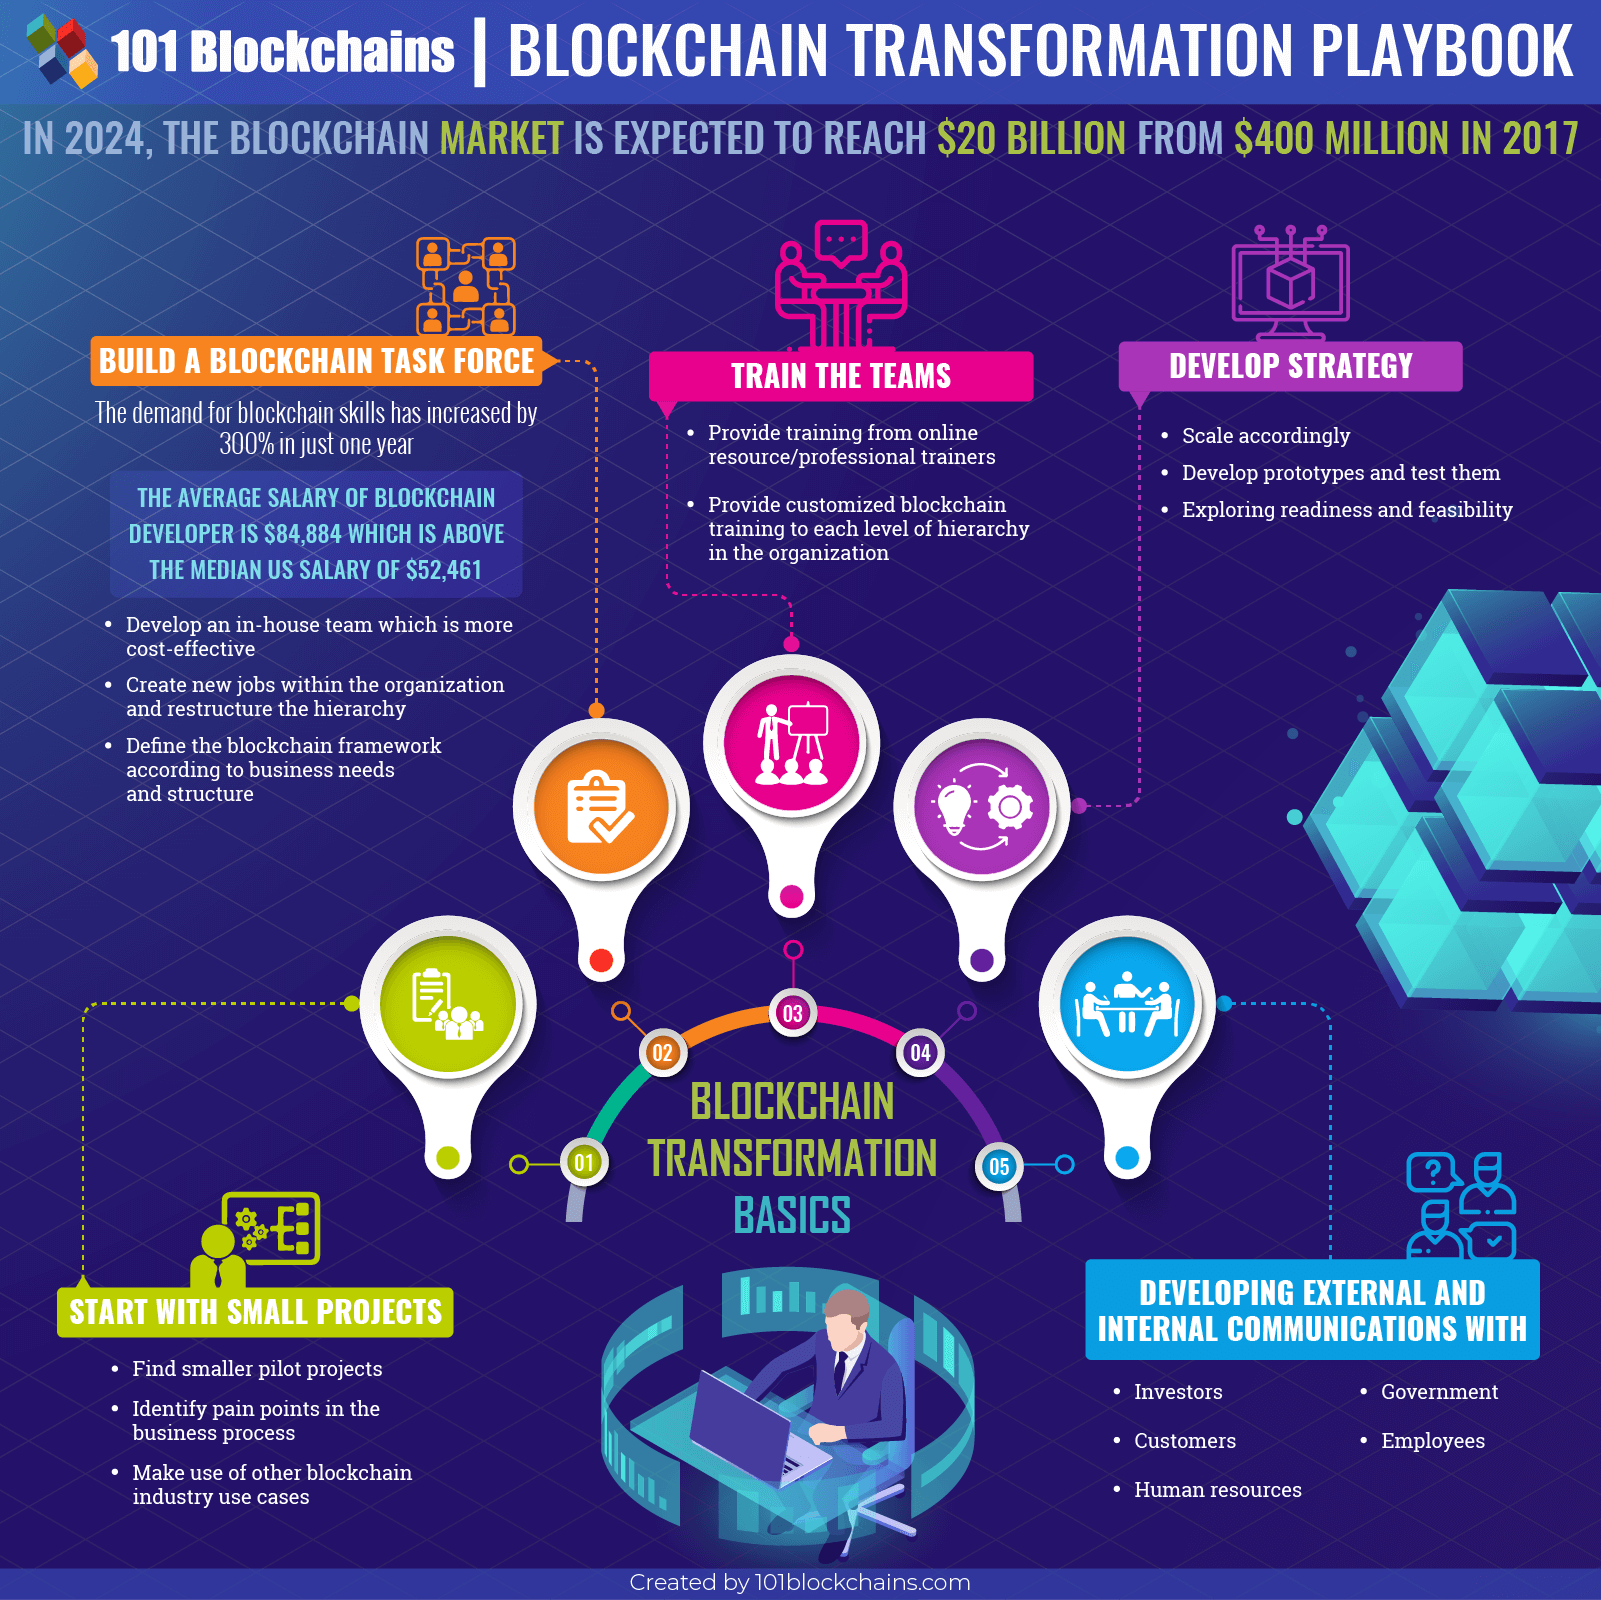 blockchain transformation playbook